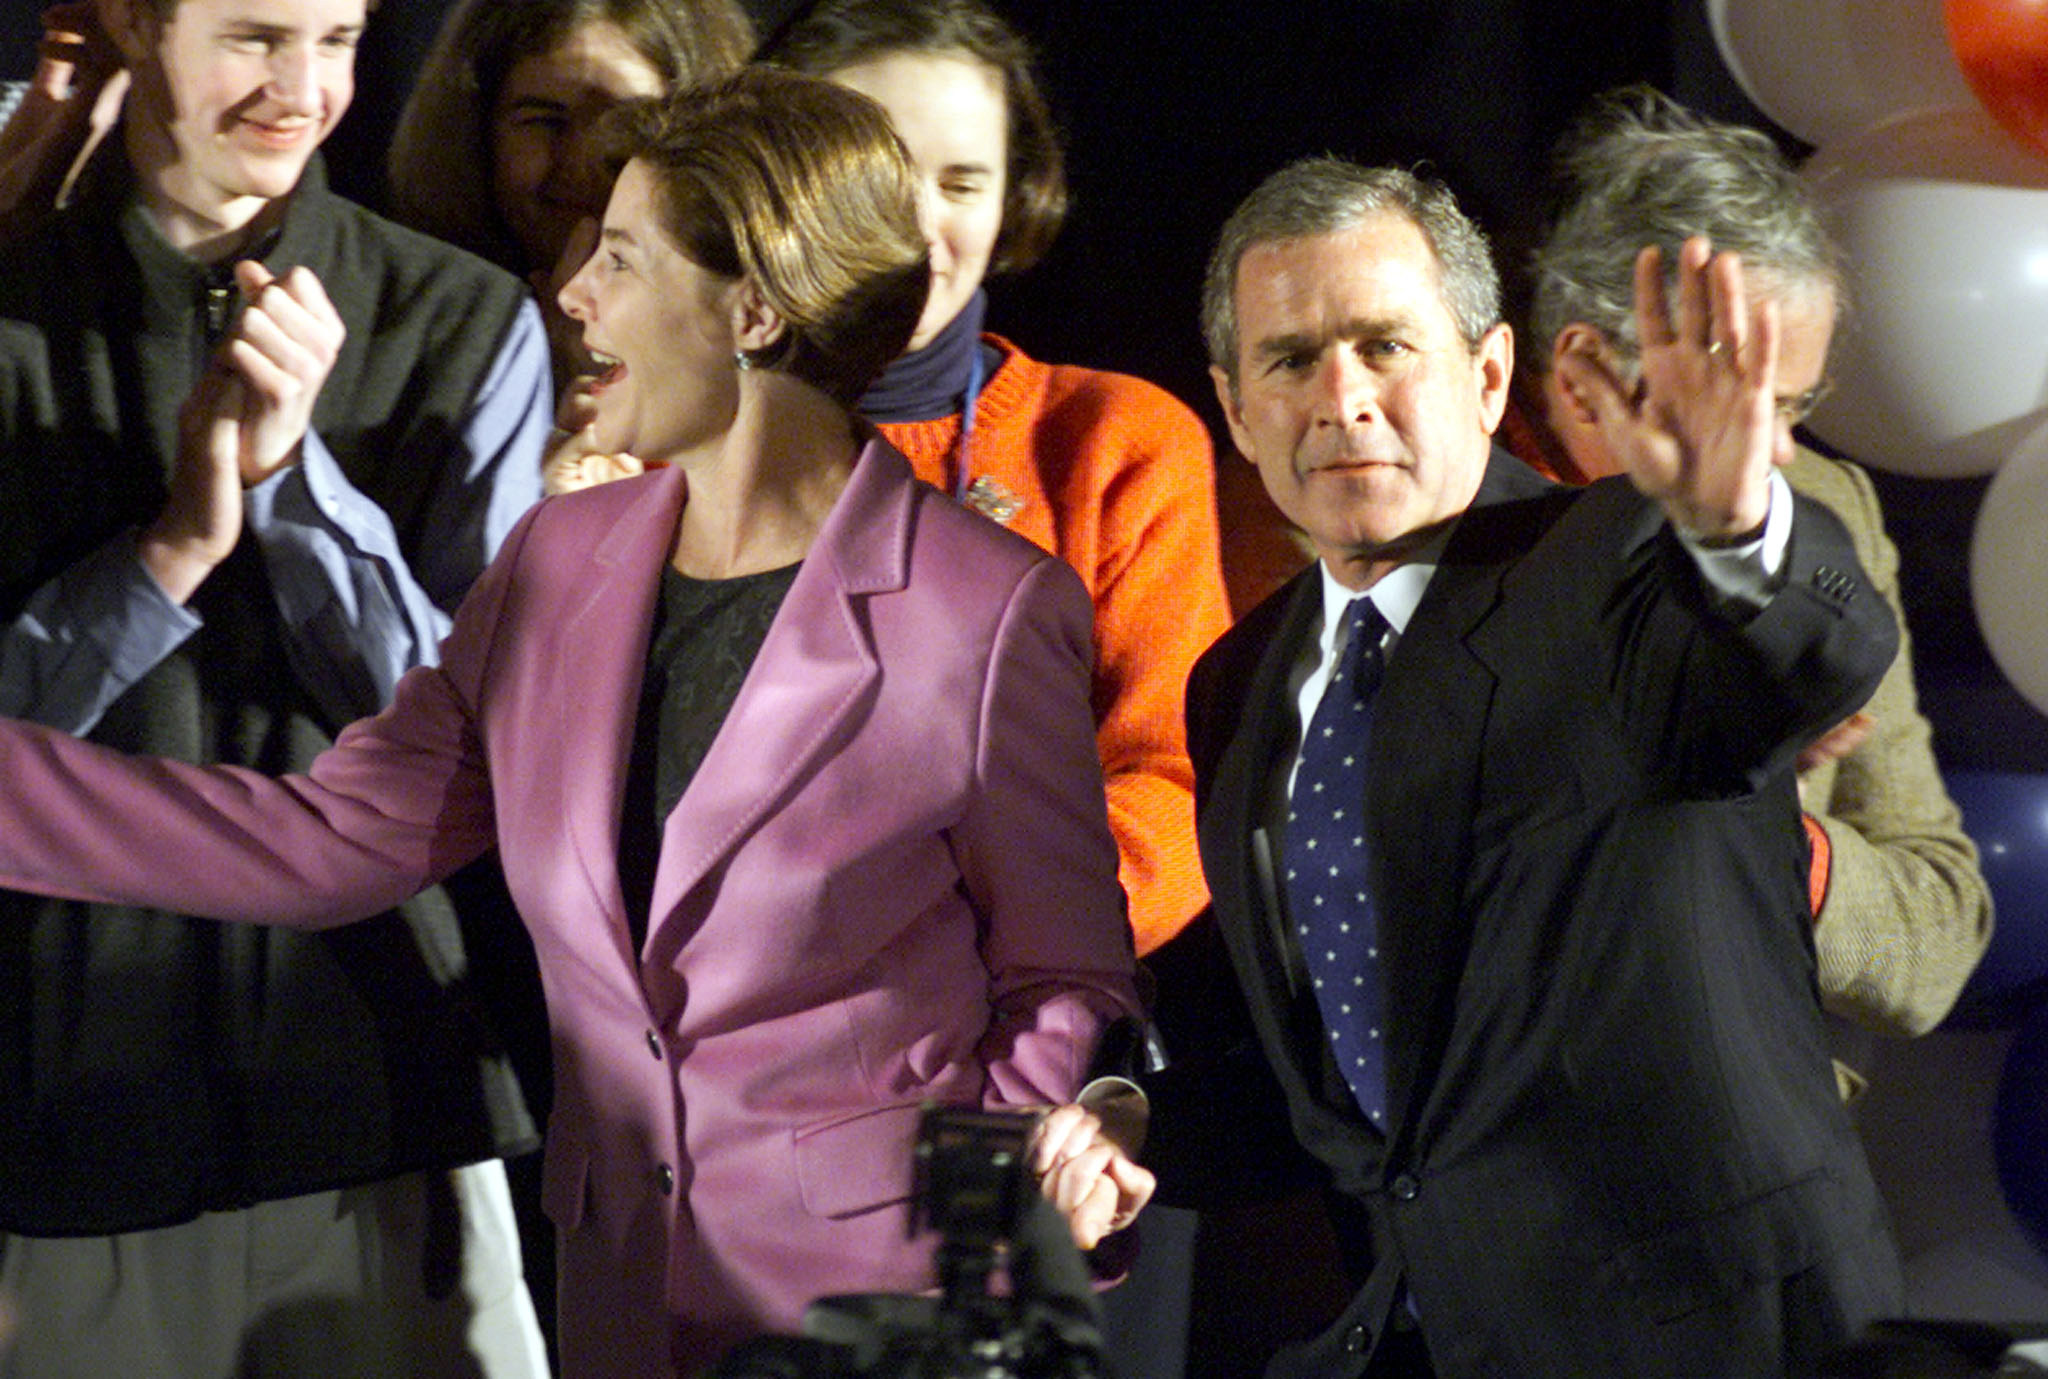 Republican presidential candidate George W. Bush appears on stage with his wife Laura at a rally of his supporters at St. Anselm College in February 1, after coming in a distant second to Arizona Senator John McCain in the New Hampshire Republican primary election. New Hampshire's primary is the first presidential primary of the 2000 election. MS - RTRUX8